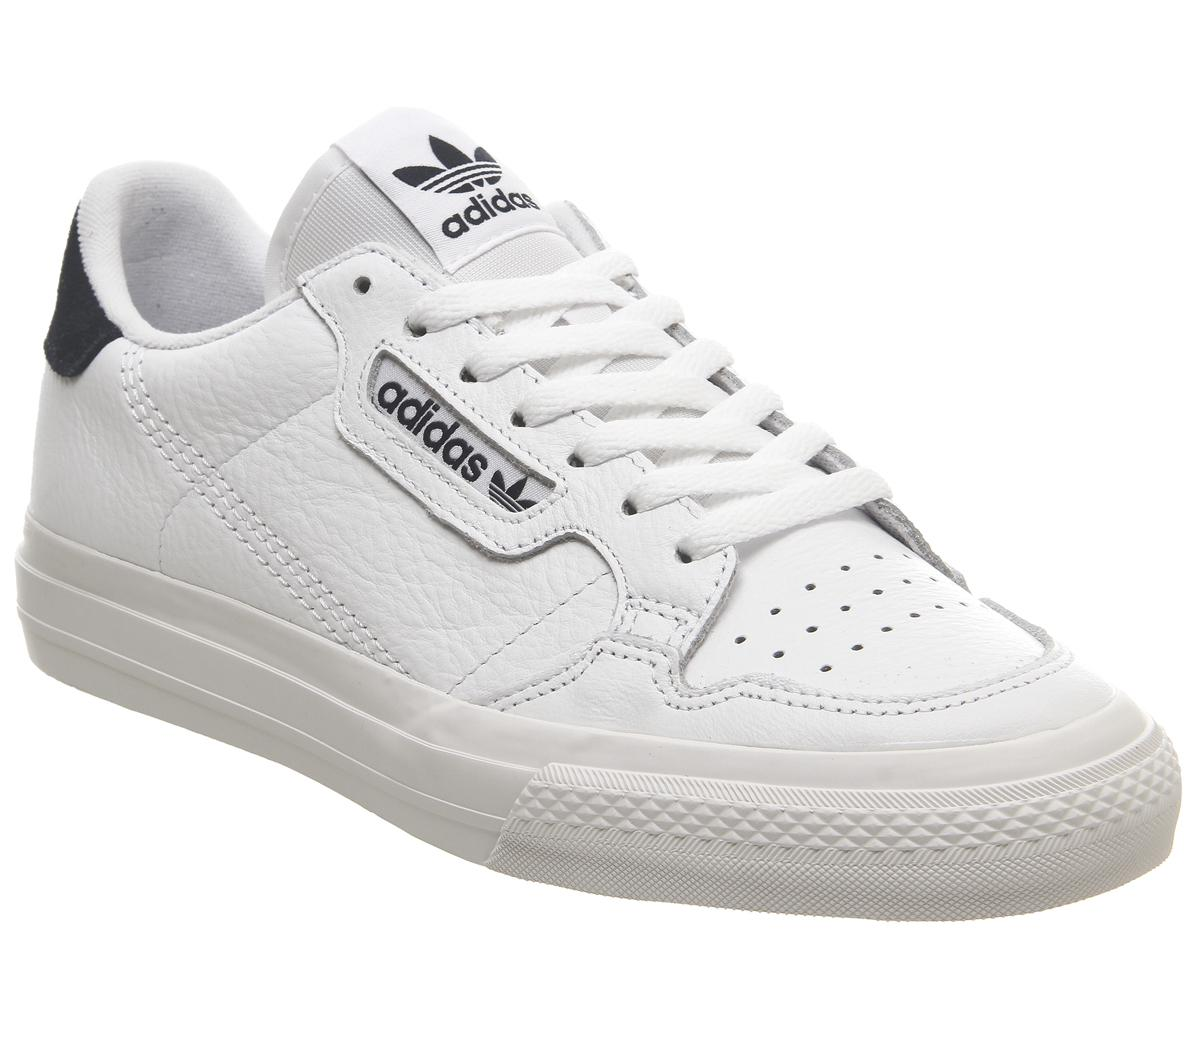 adidas Original continental 80 vulc sneakers in off white